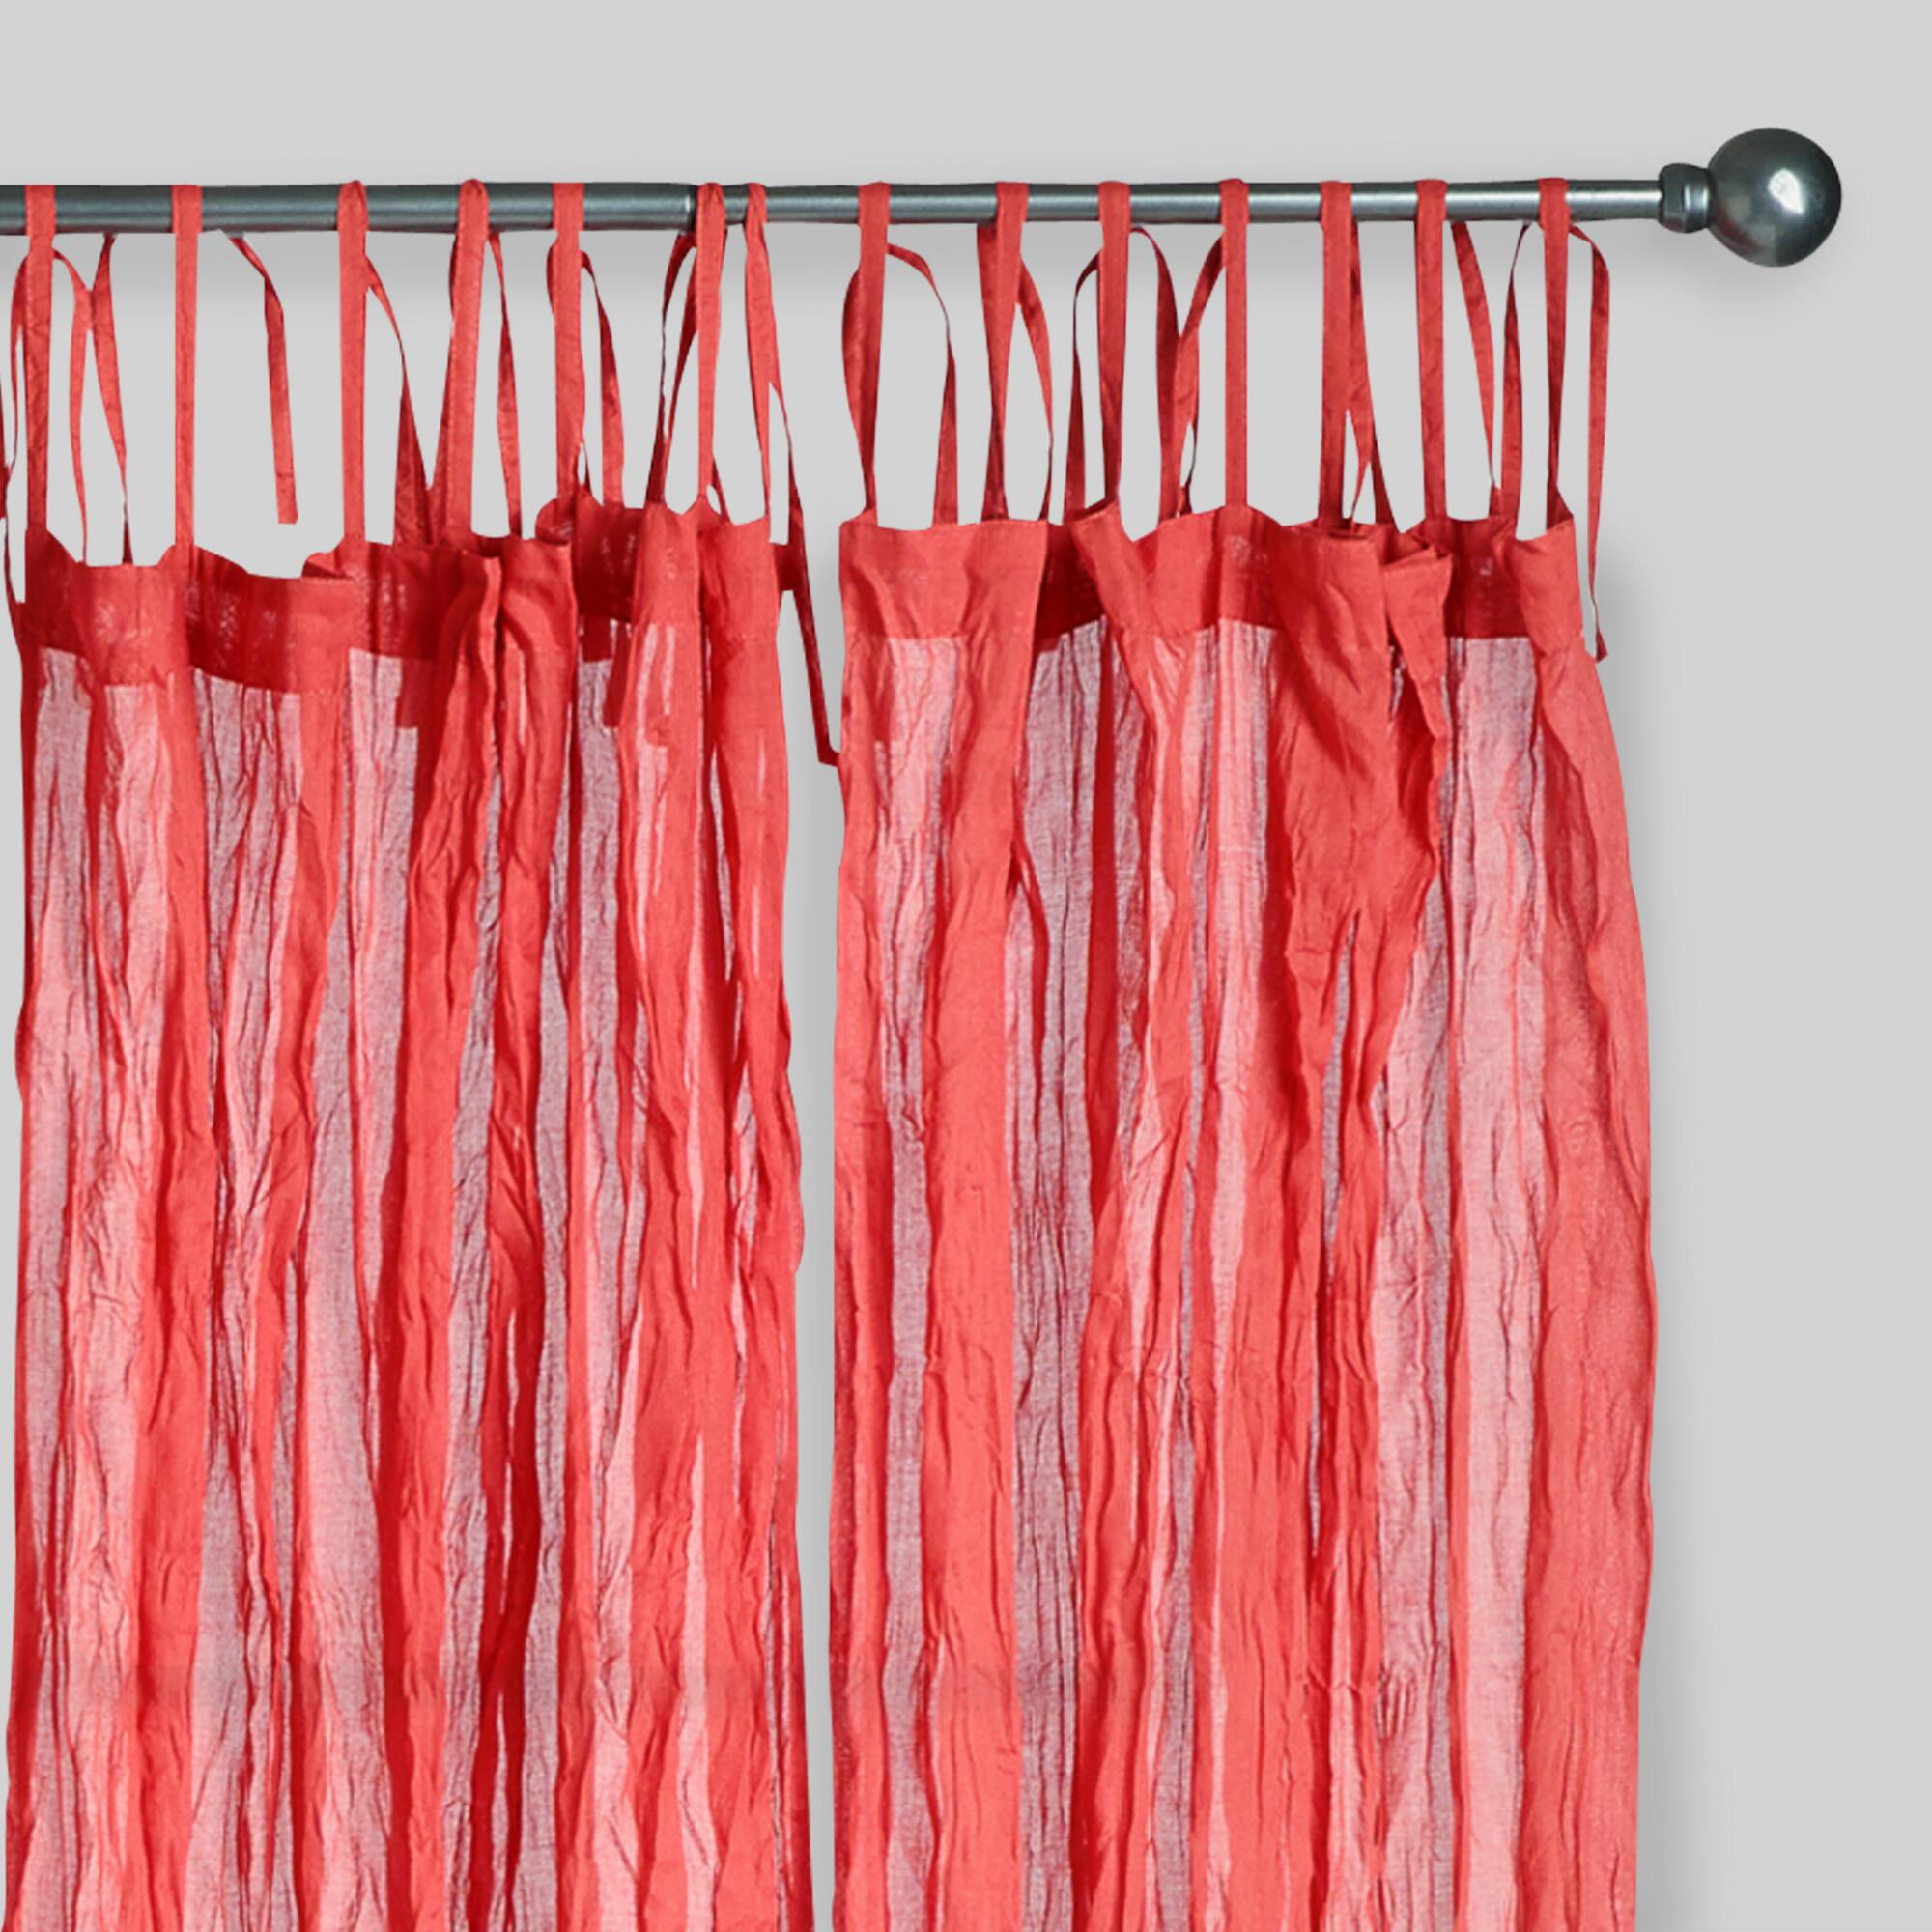 room red turquoise sale patterned living rustic home size for blackout curtains of brown ideas decor grey and startling accessories full chairs